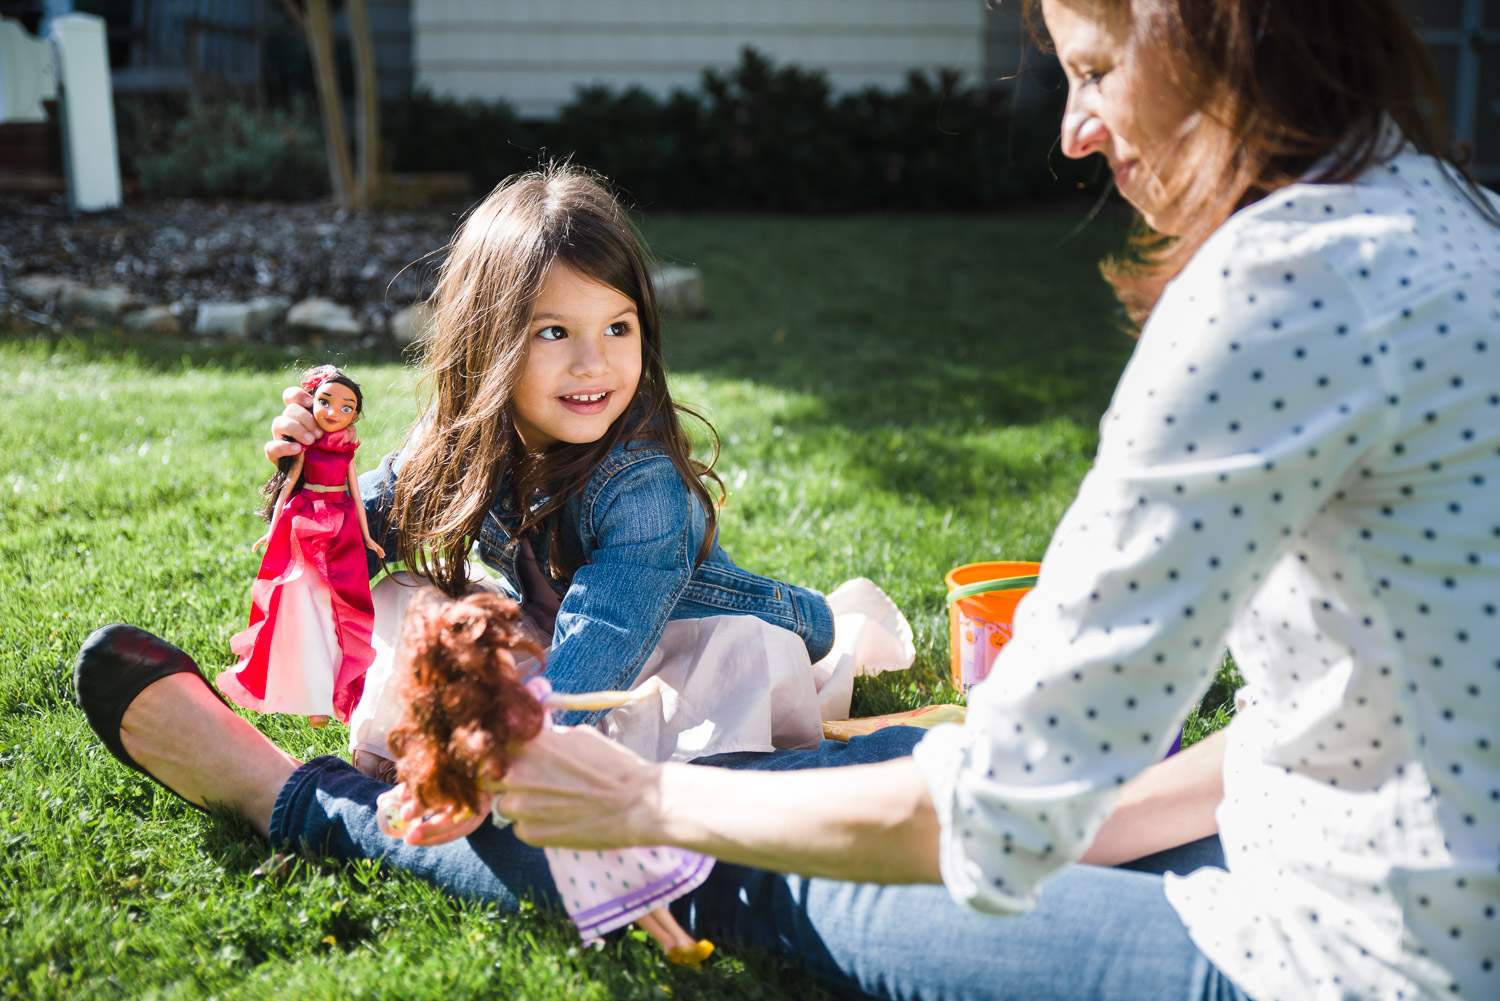 Little girl playing dolls with mother on grass.